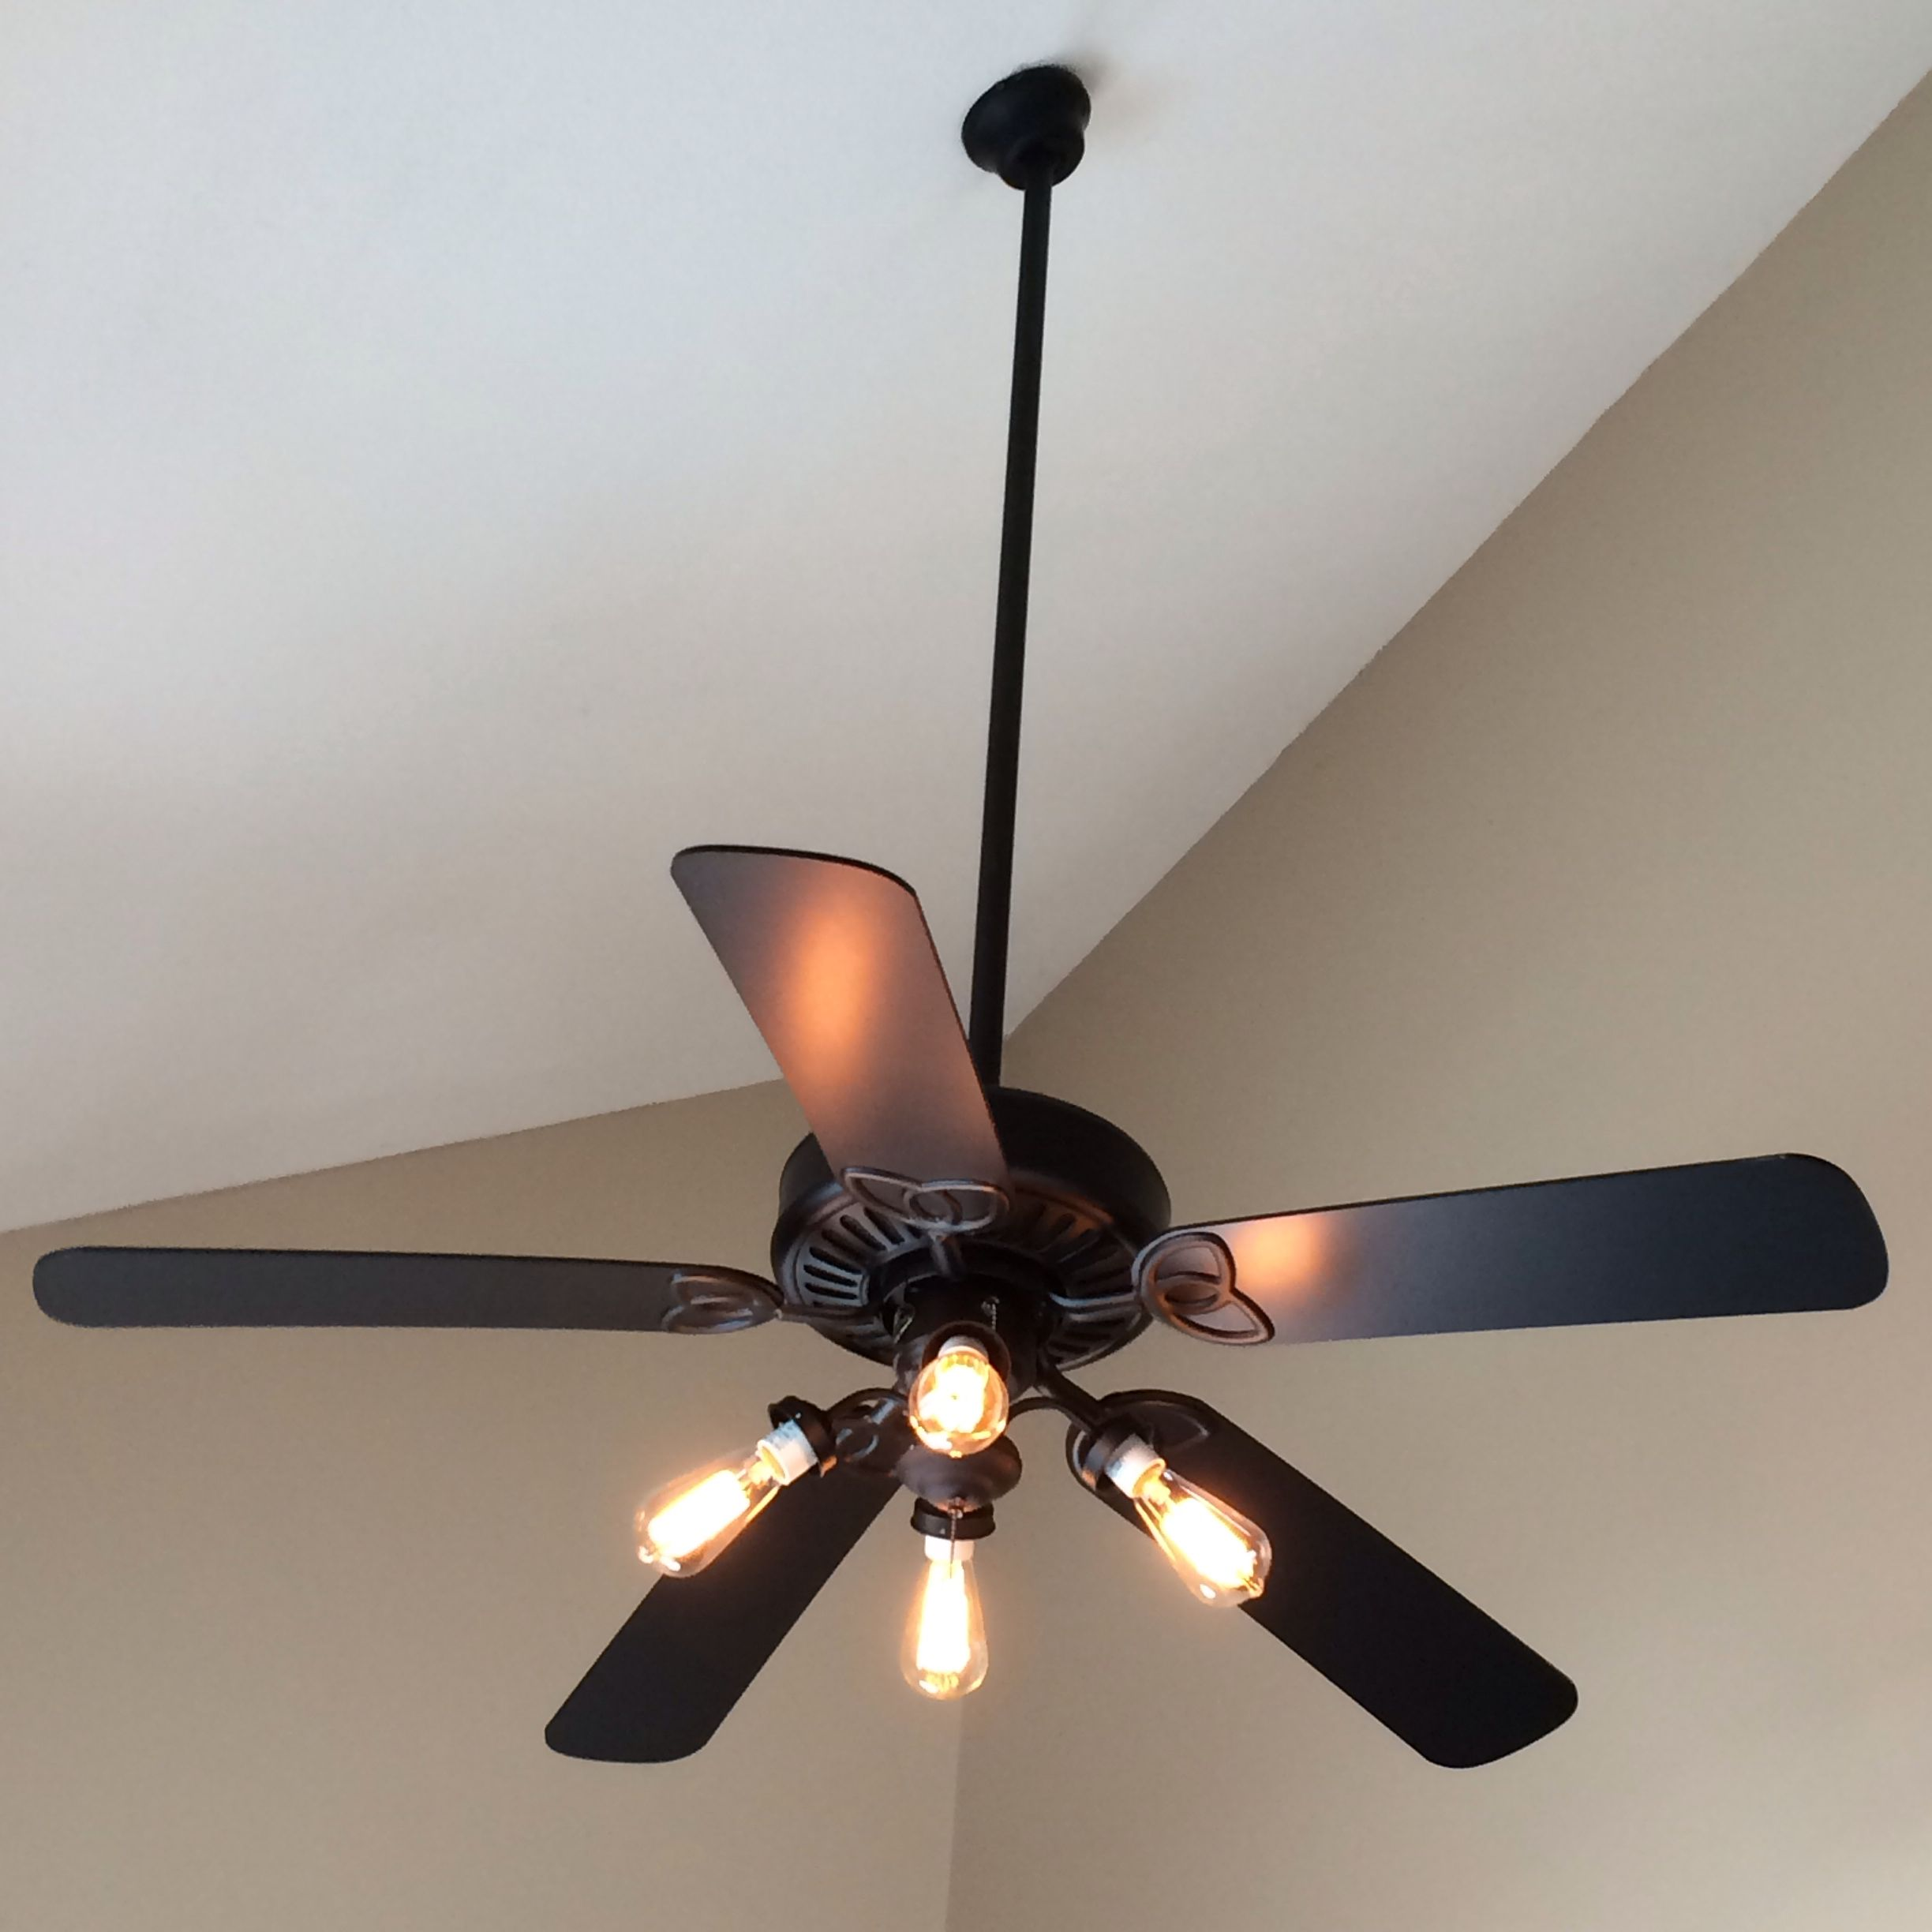 Quick Ceiling Fan Makeover Simply Remove The Shades And Screws And Use Edison Bulbs For A More Modern I Ceiling Fan Makeover Fan Light Ceiling Fan With Light